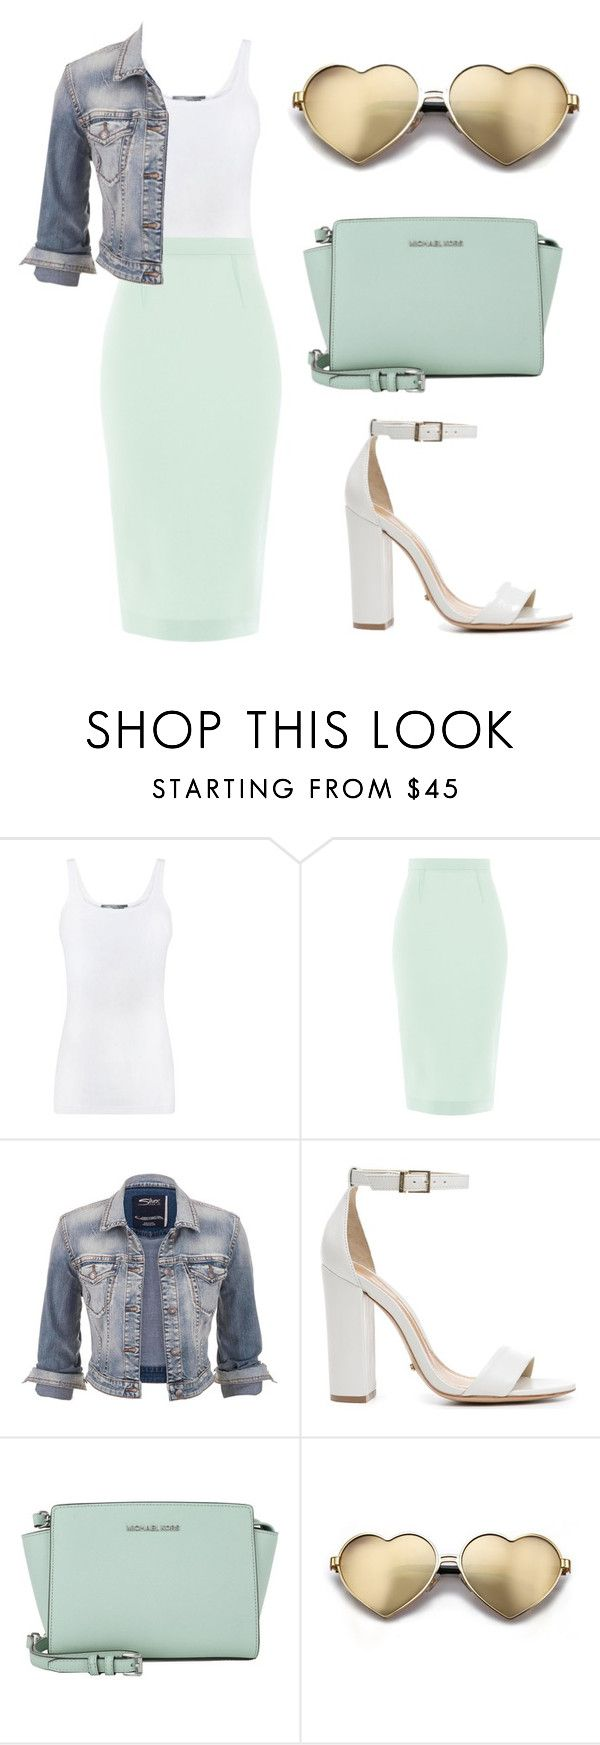 """Dressy"" by rhianna-alexandre on Polyvore featuring Vince, Roland Mouret, maurices, Schutz, Michael Kors and Wildfox"